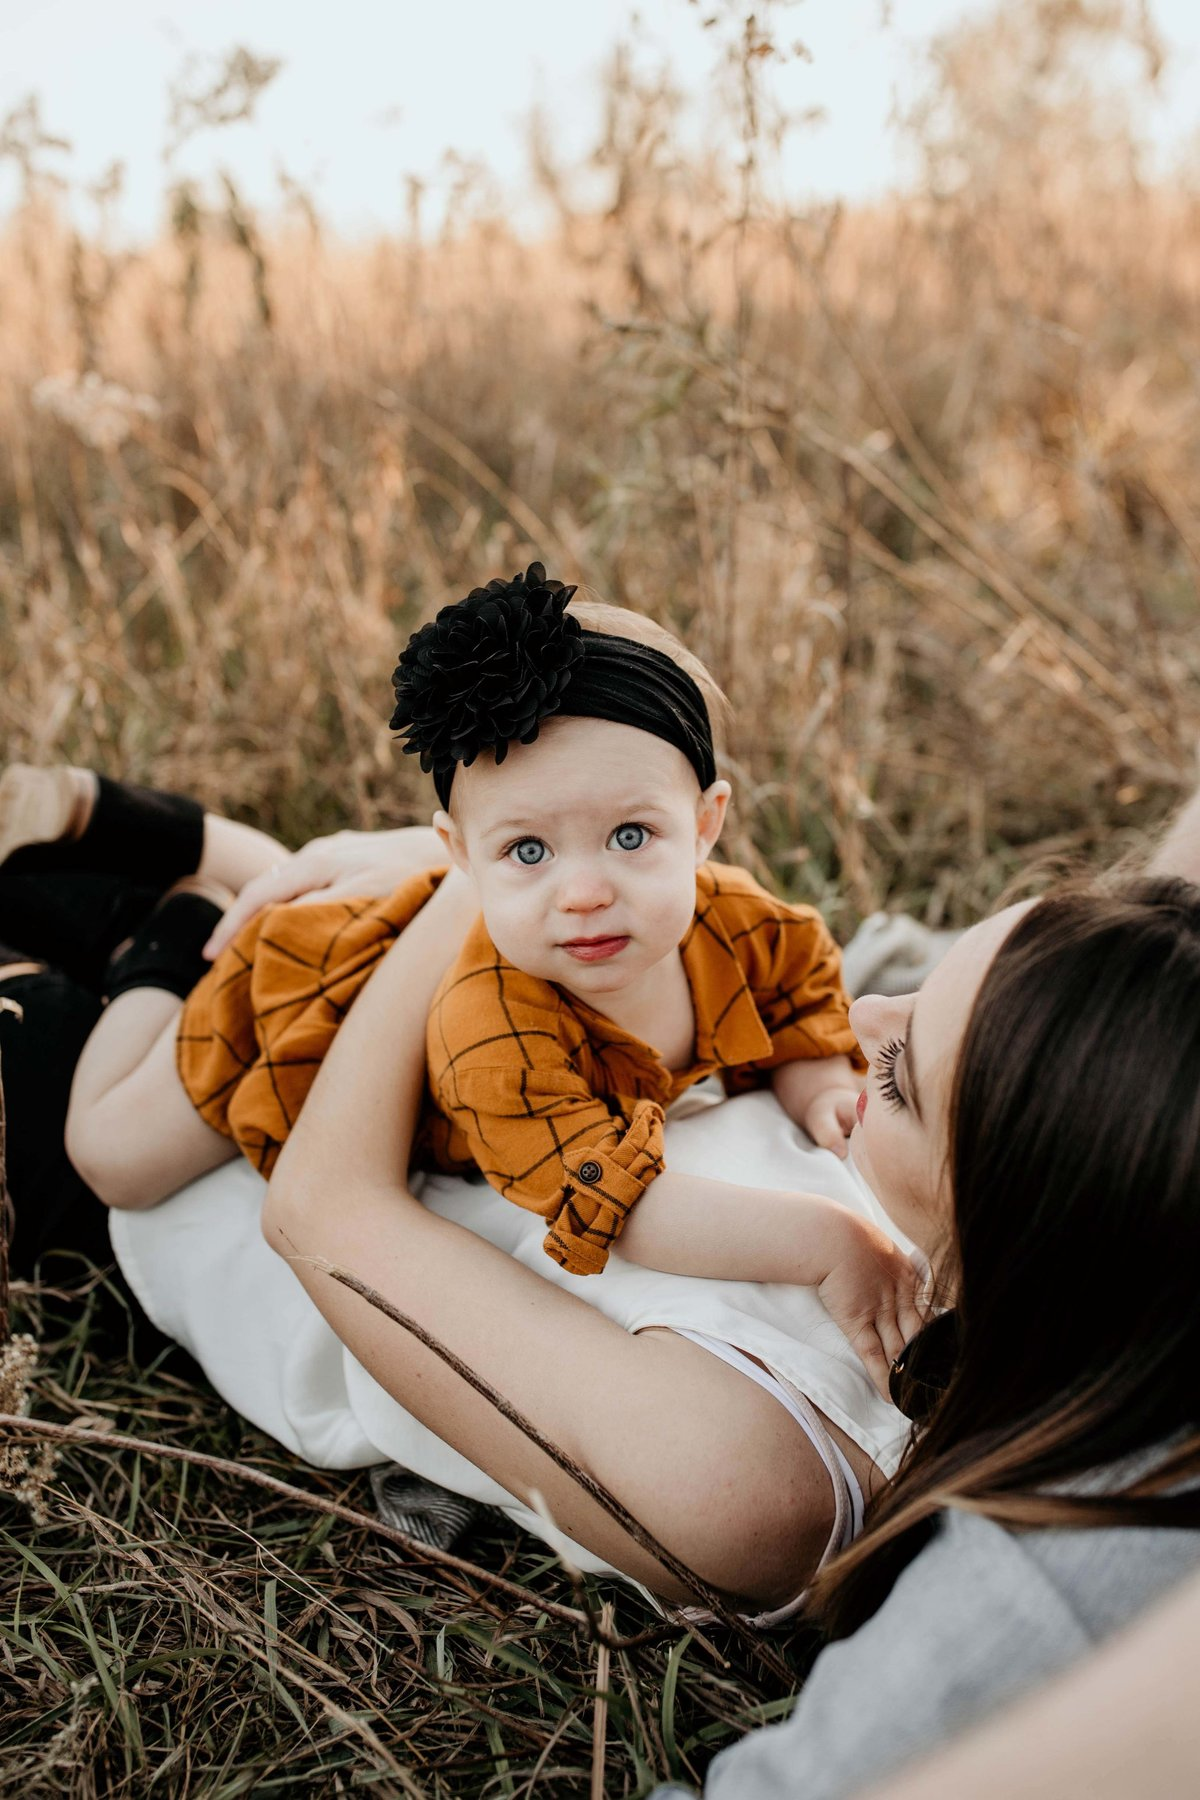 Brenna Walker Family Session Fall 2019 - Wichita Photographer - Andrea Corwin Photography (62 of 100)